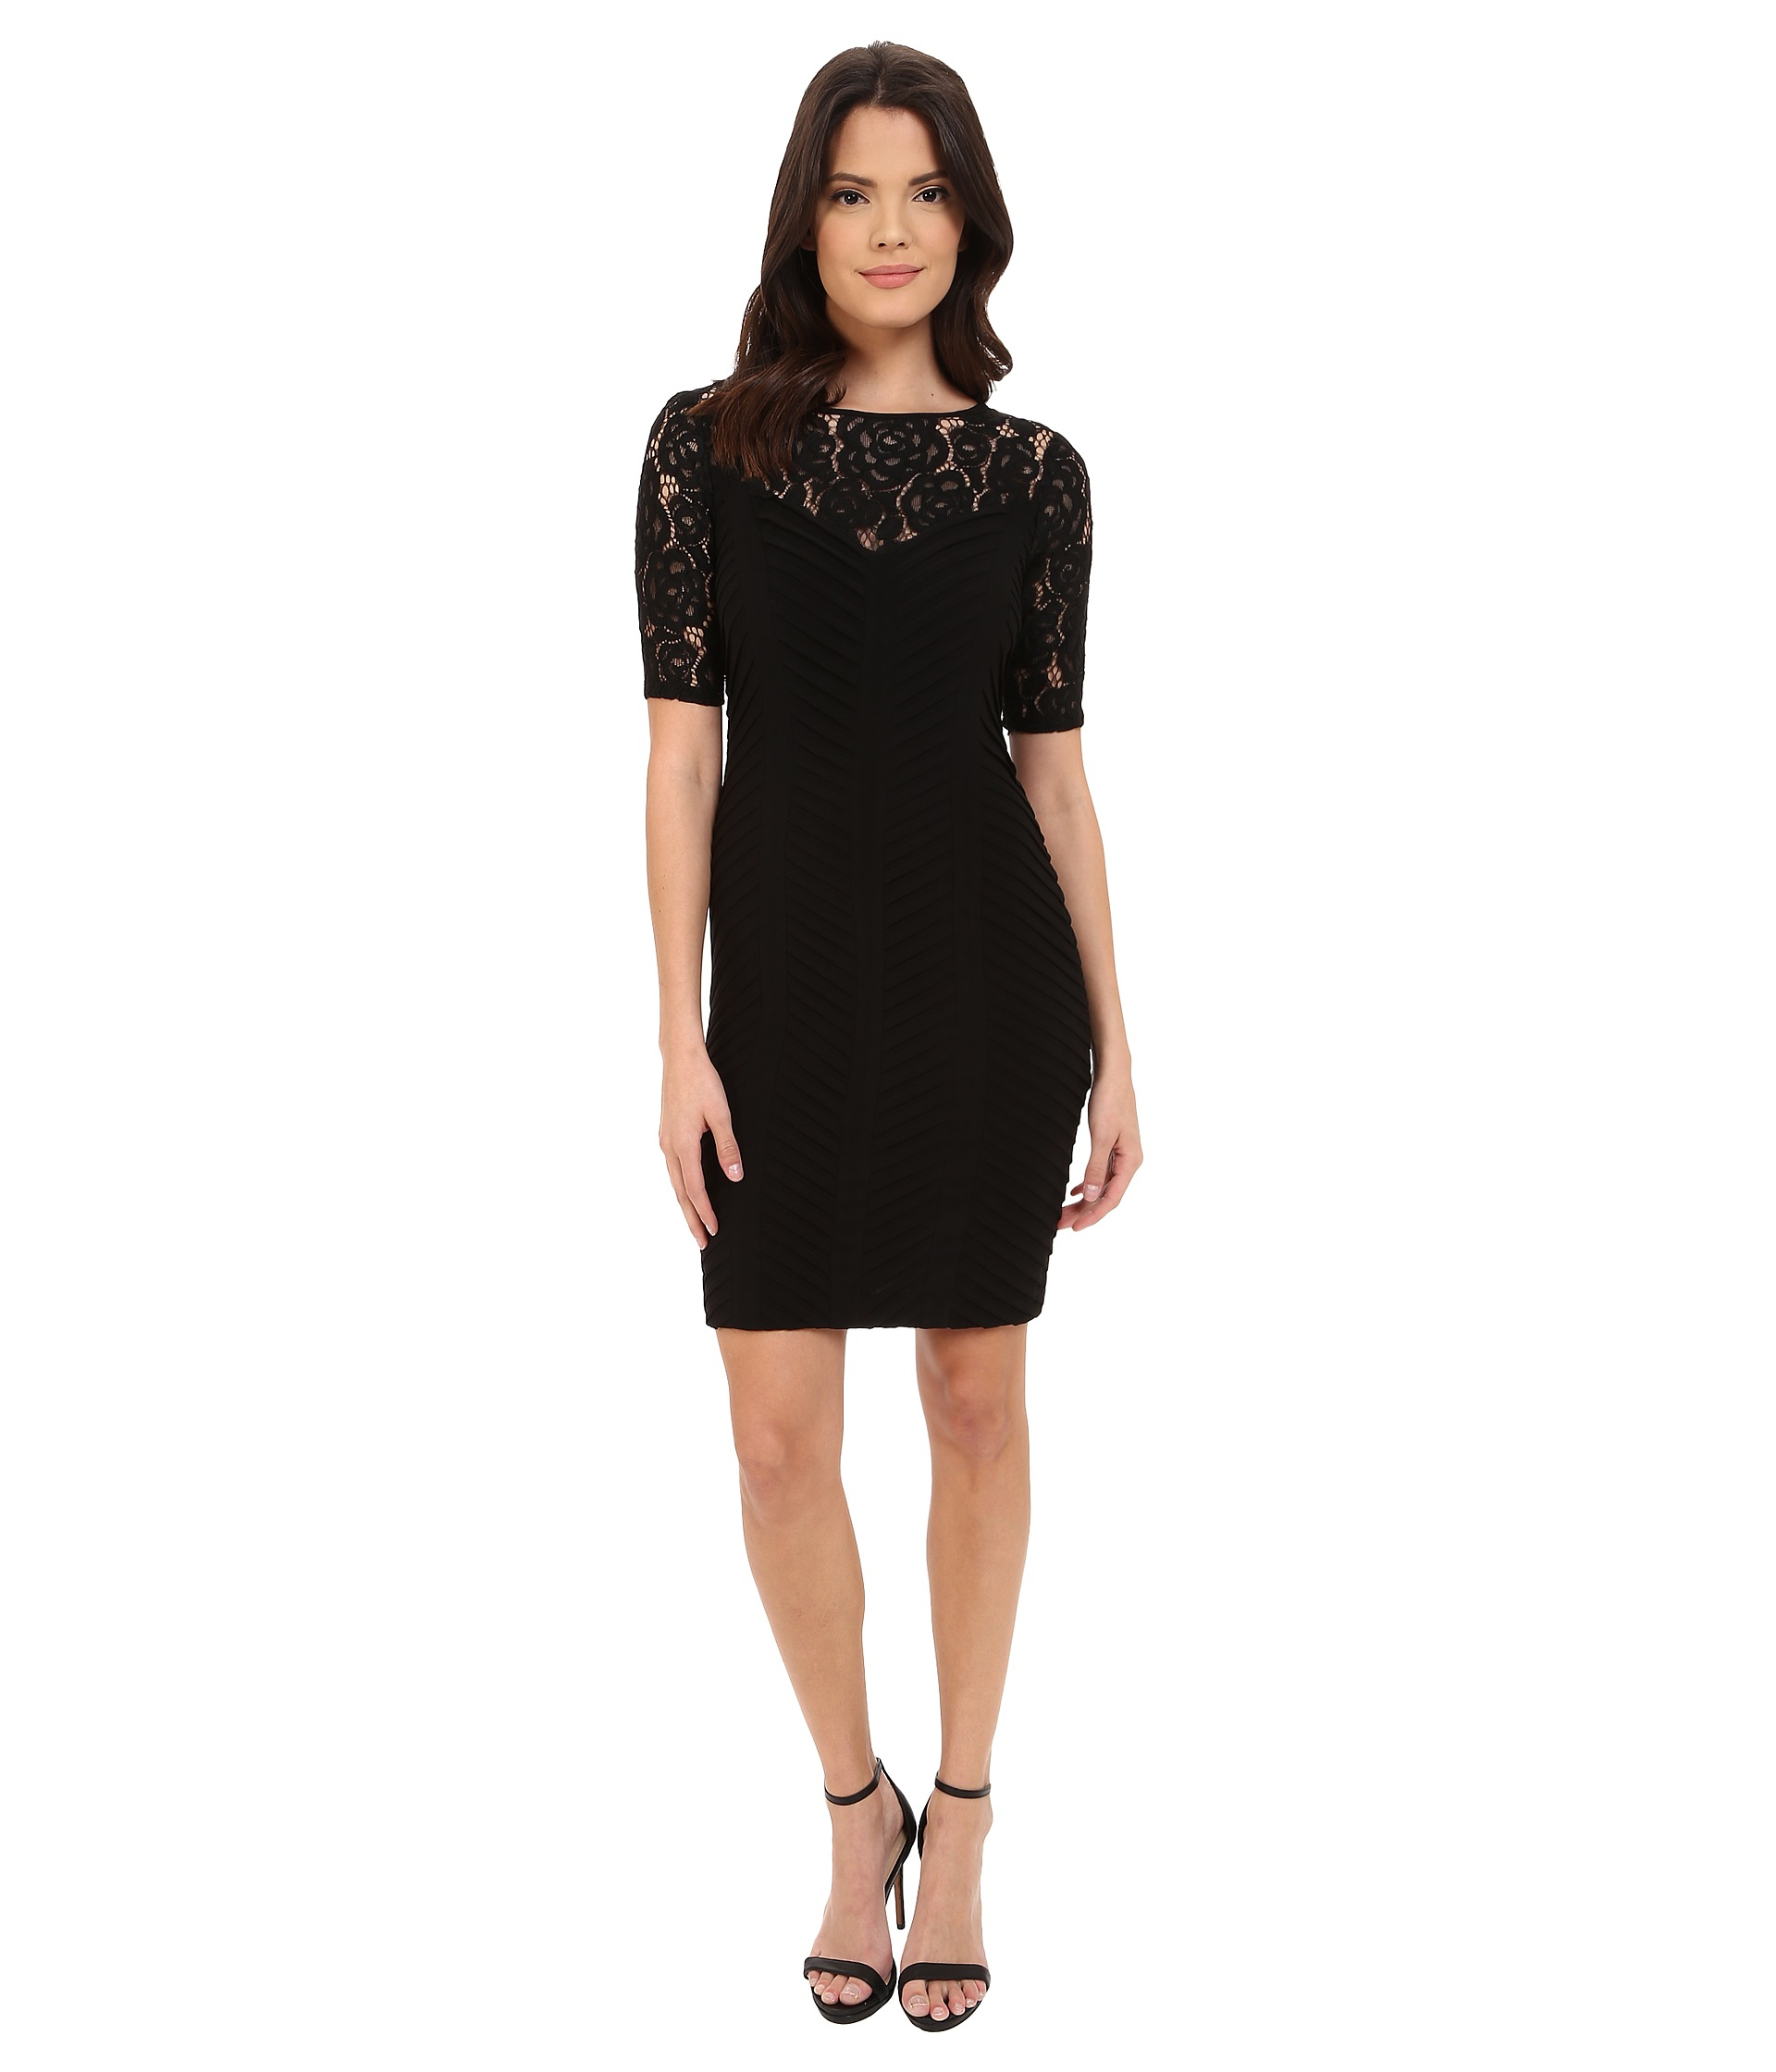 Stores adrianna papell sequin bodycon dress quartz knitting with sleeves